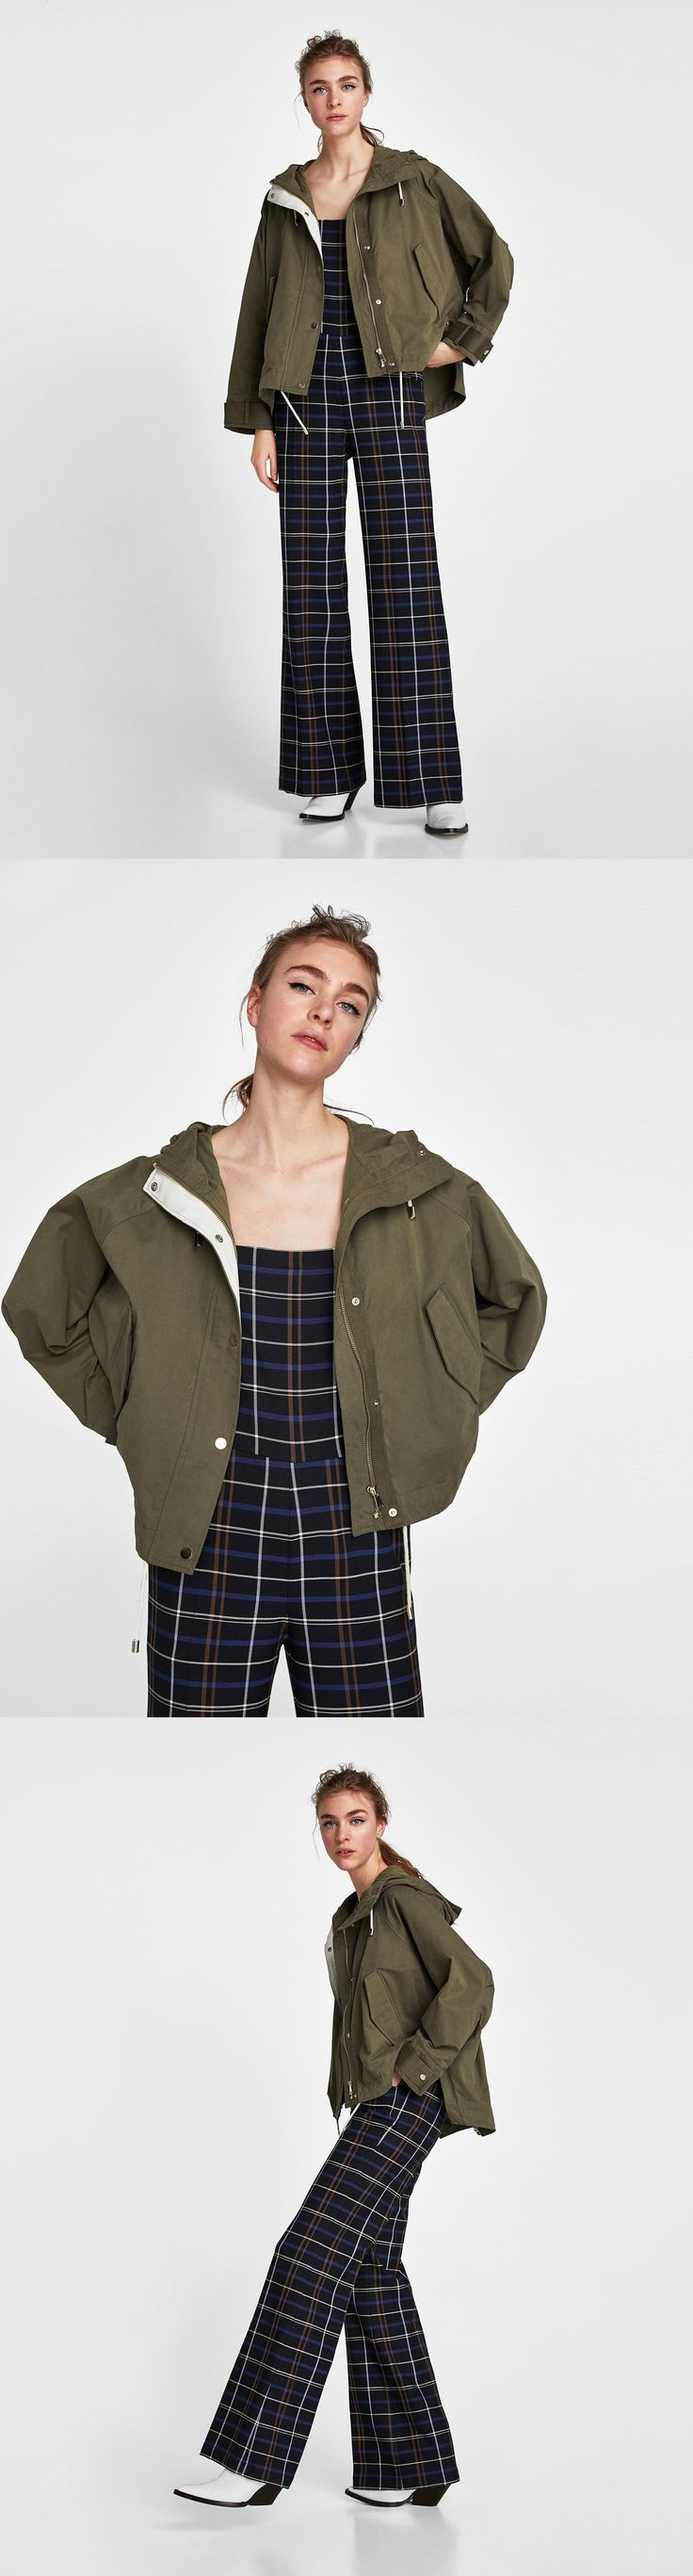 Short Oversized Parka // 69.90 USD // Zara // Parka with hood and long sleeves with contrasting tabs on the cuffs. Front flap pockets with snap buttons. Zip-up front hidden by a snap button placket. HEIGHT OF MODEL: 178 cm. / 5′ 10″